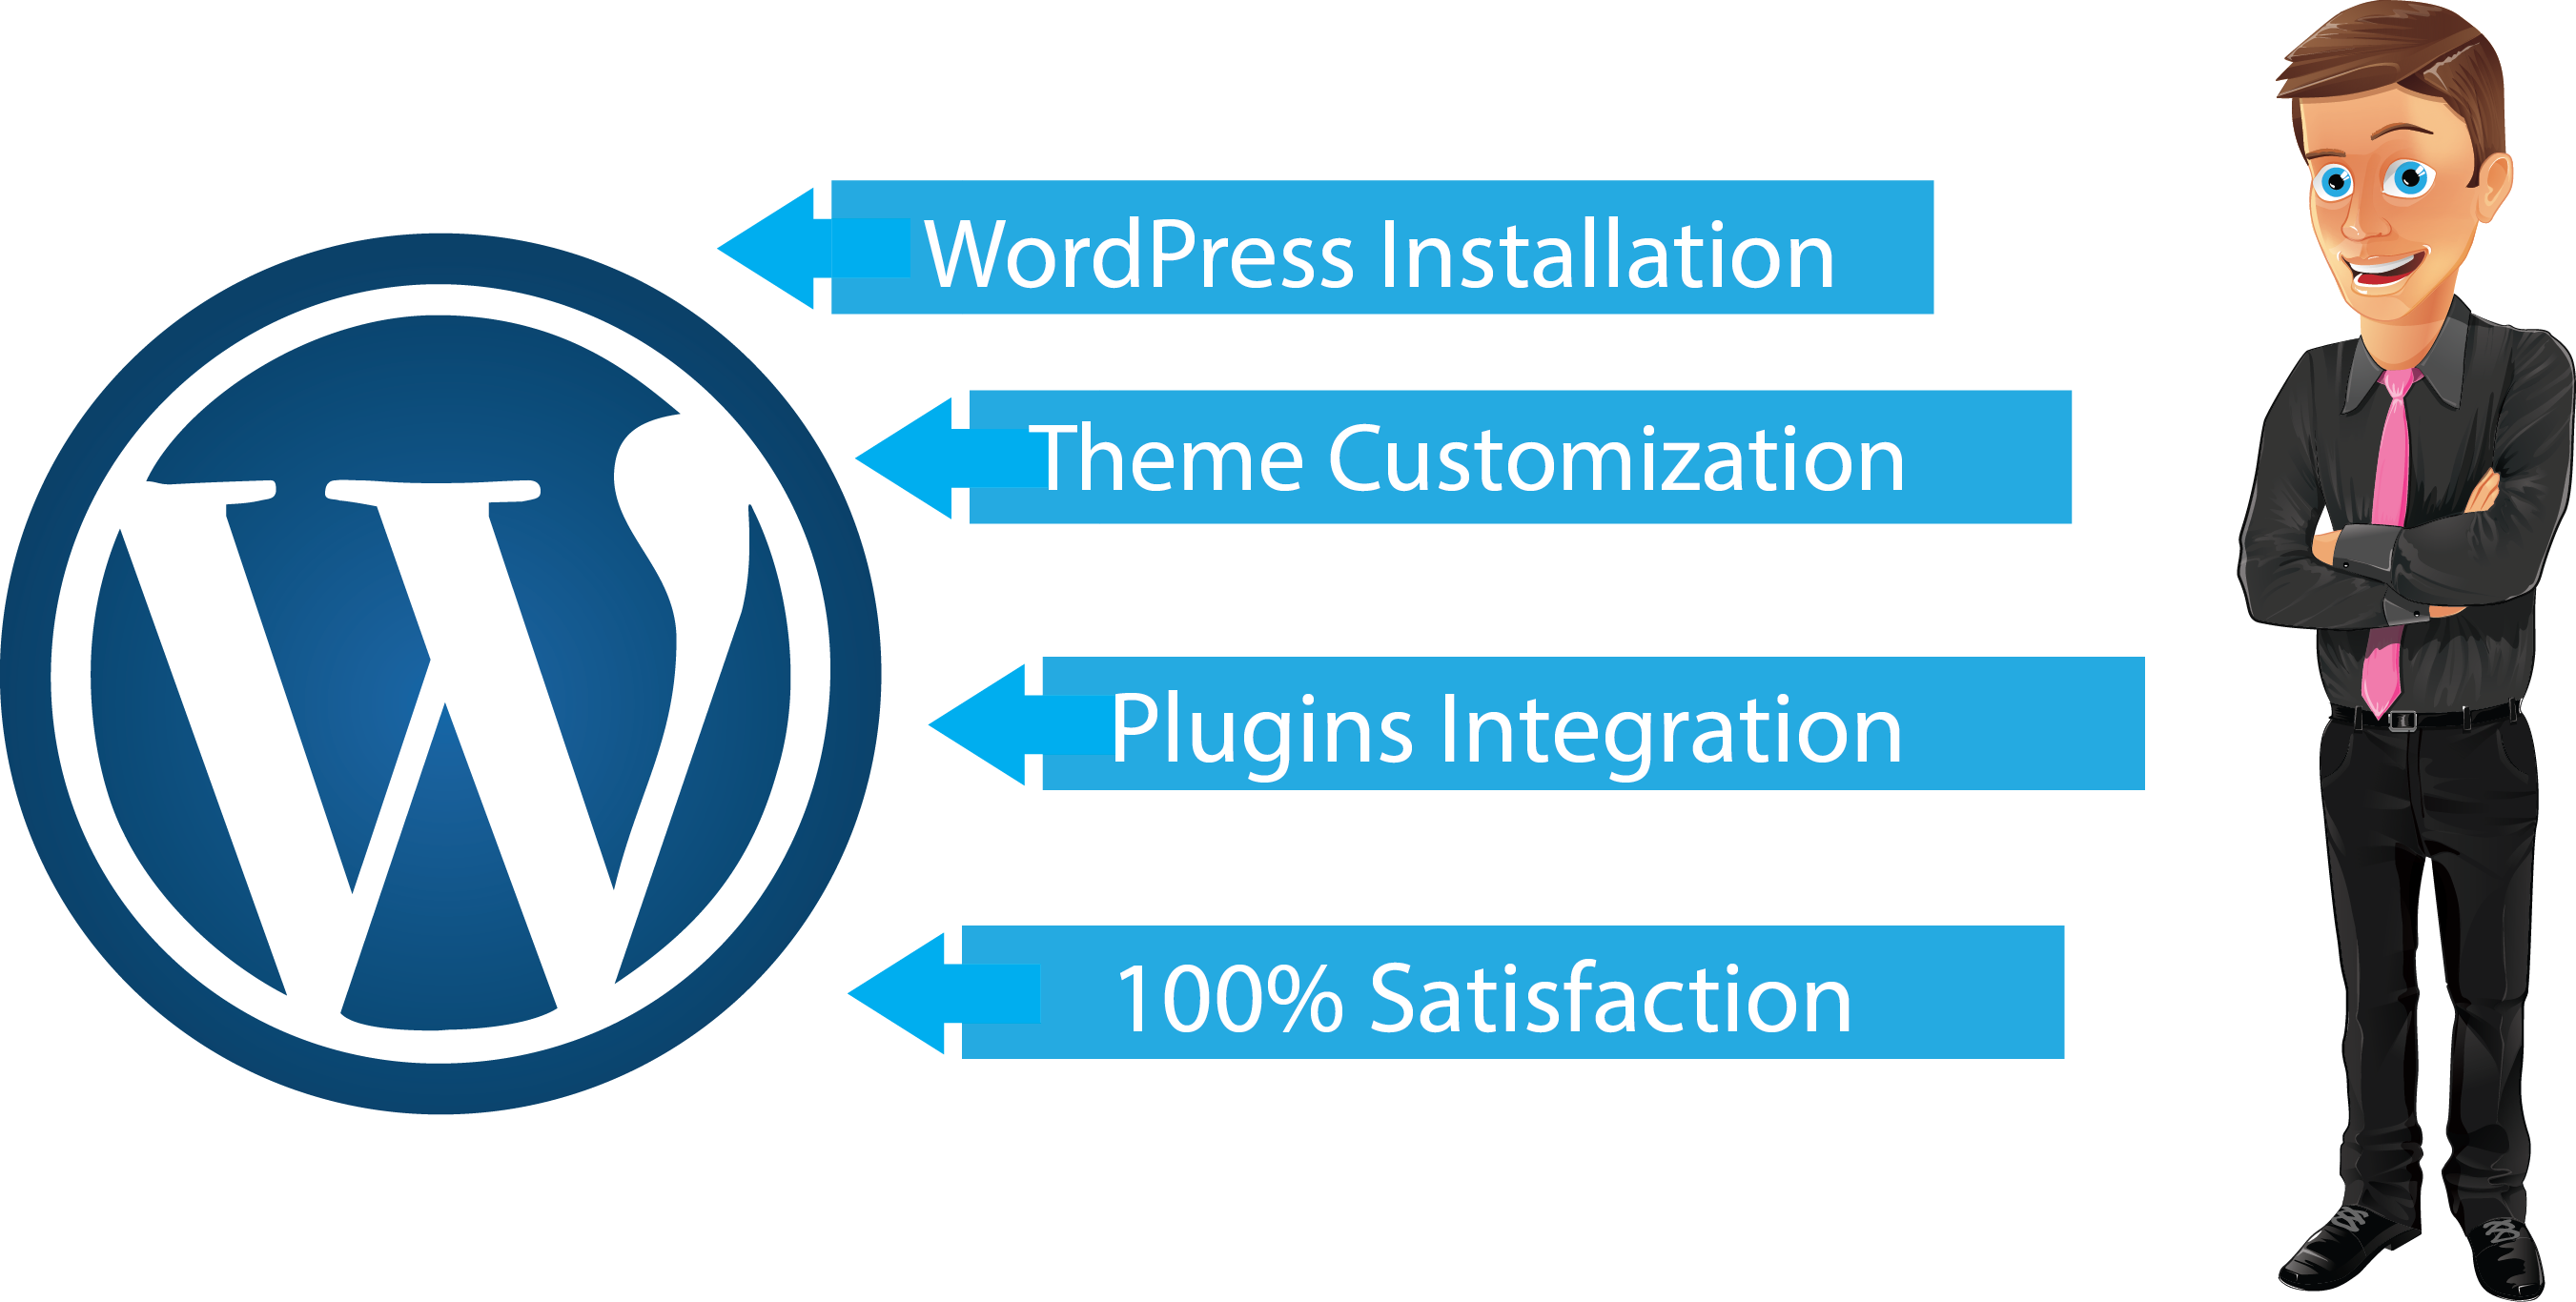 WordPress Installation and Theme Customization Service